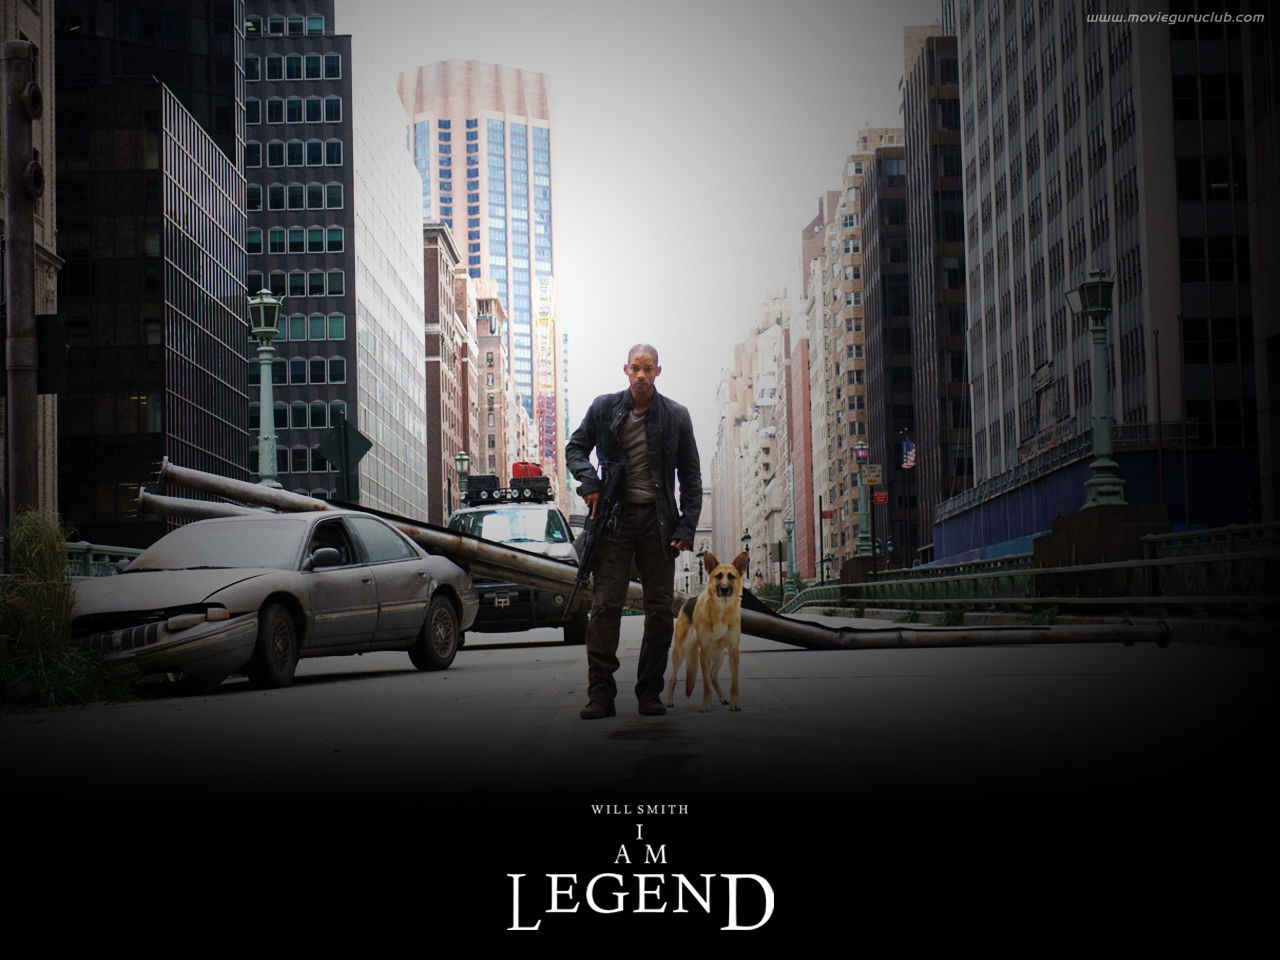 I Am Legend Movie Quotes. QuotesGram